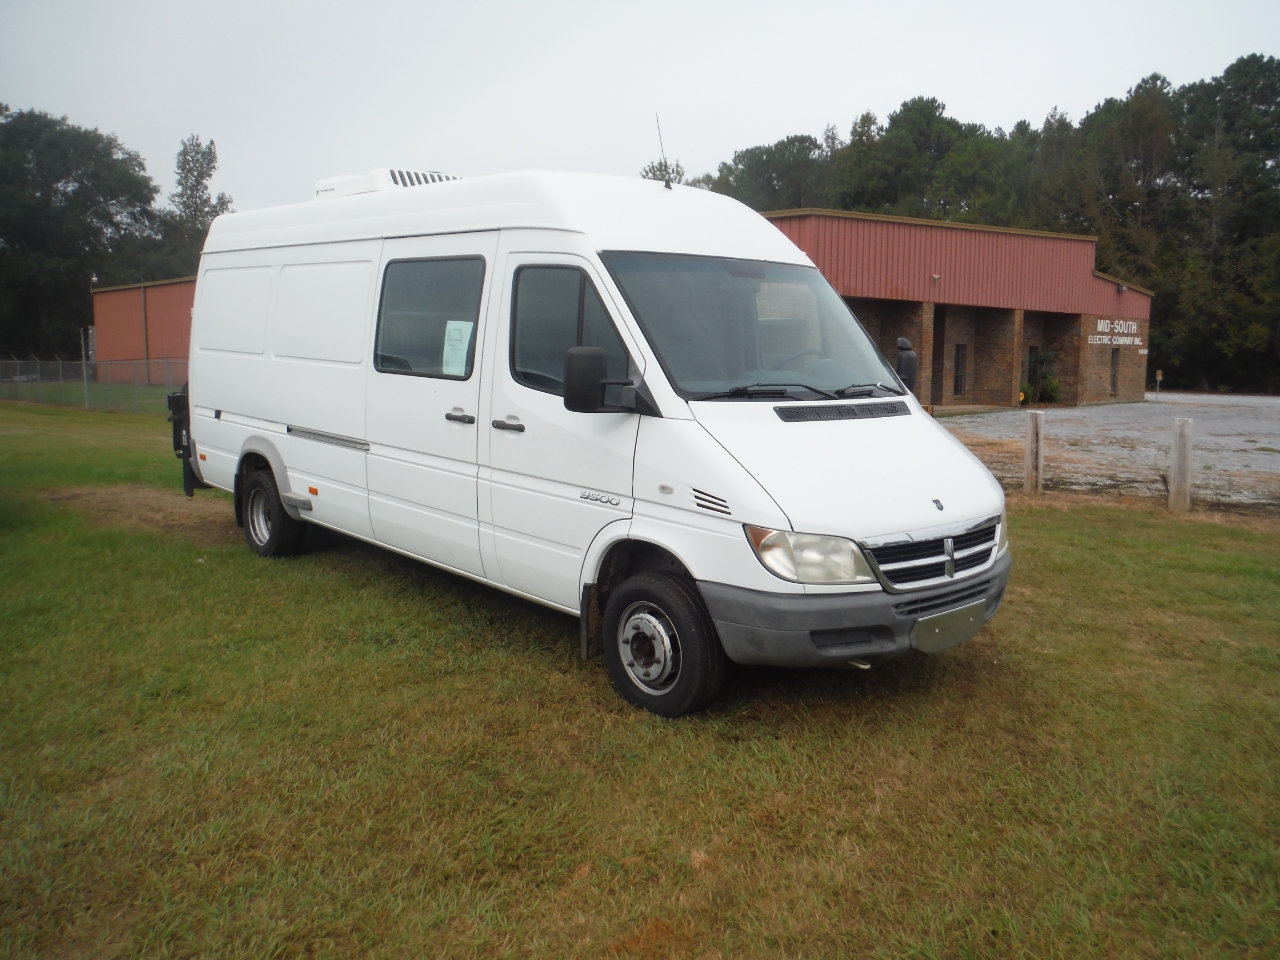 2005 Dodge Sprinter Van 3500 Super High Ceiling 158-in. WB